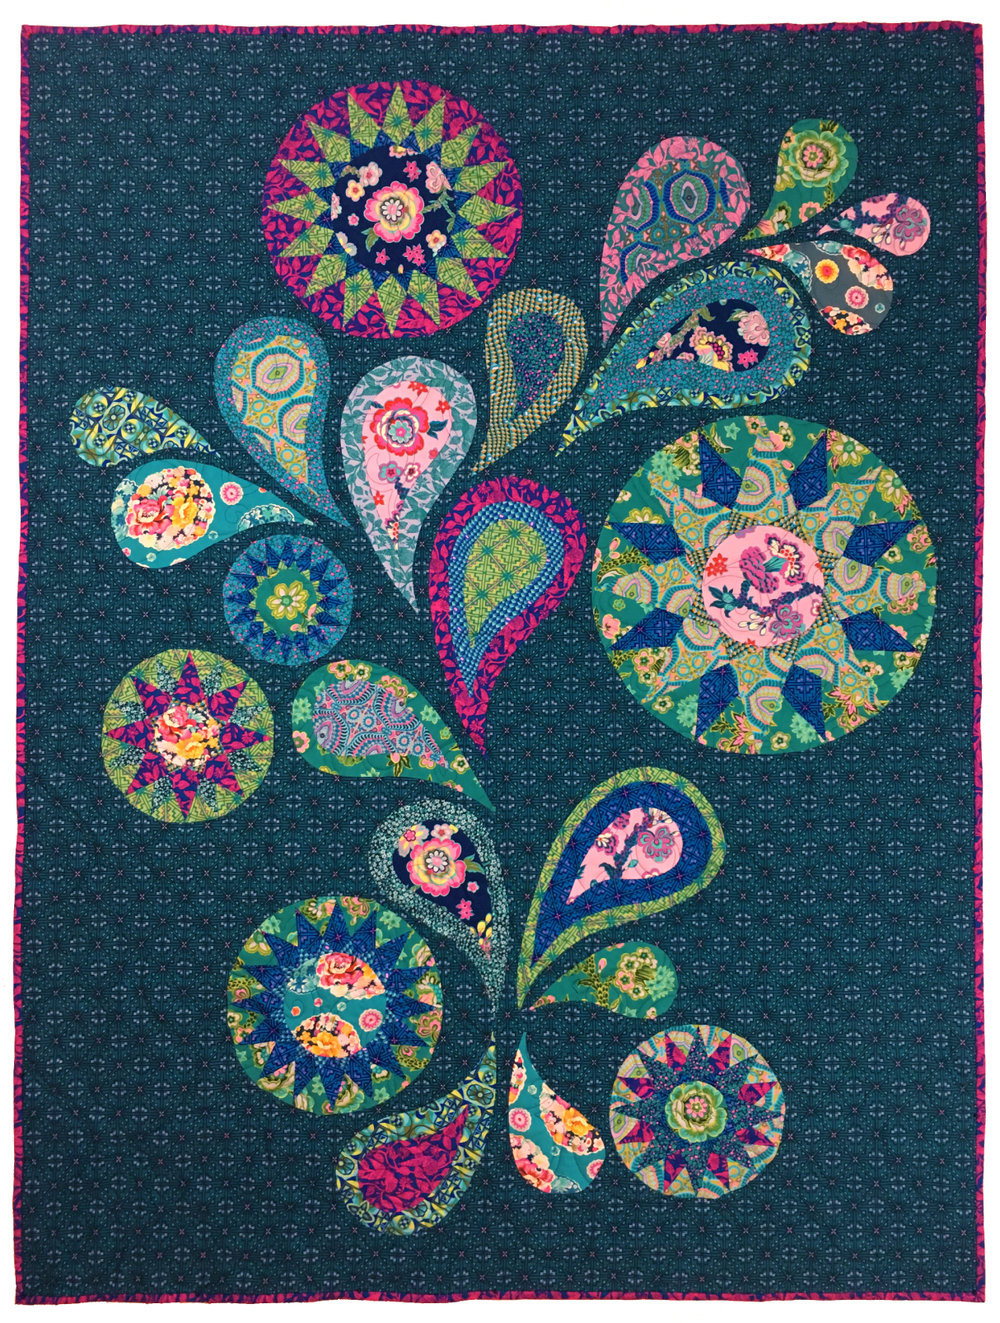 Midnight Flower Dance Quilt.jpg